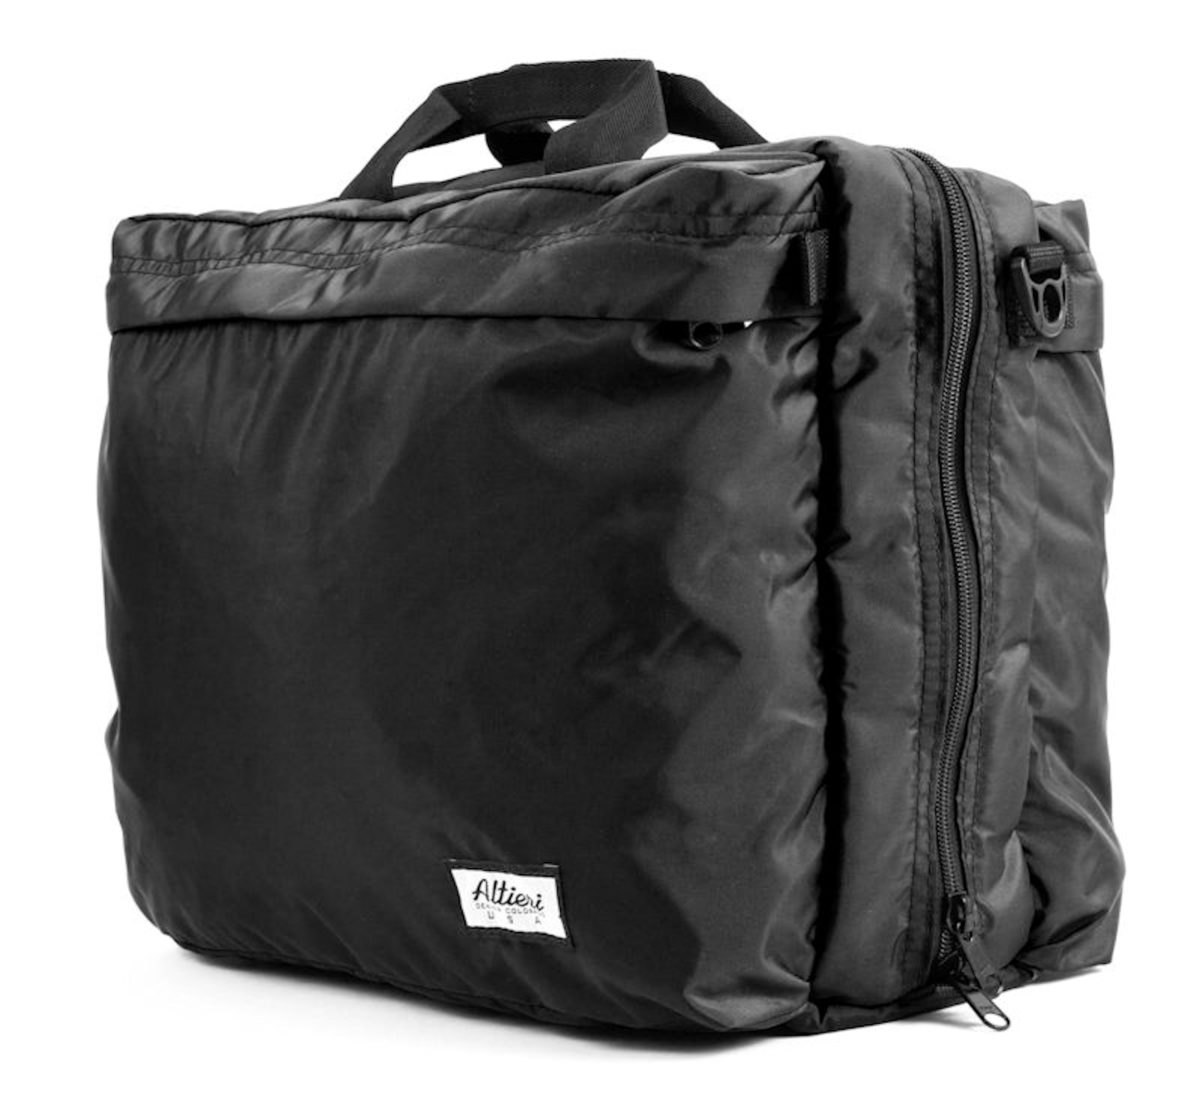 altieri single clarinet double pocket casecover side view